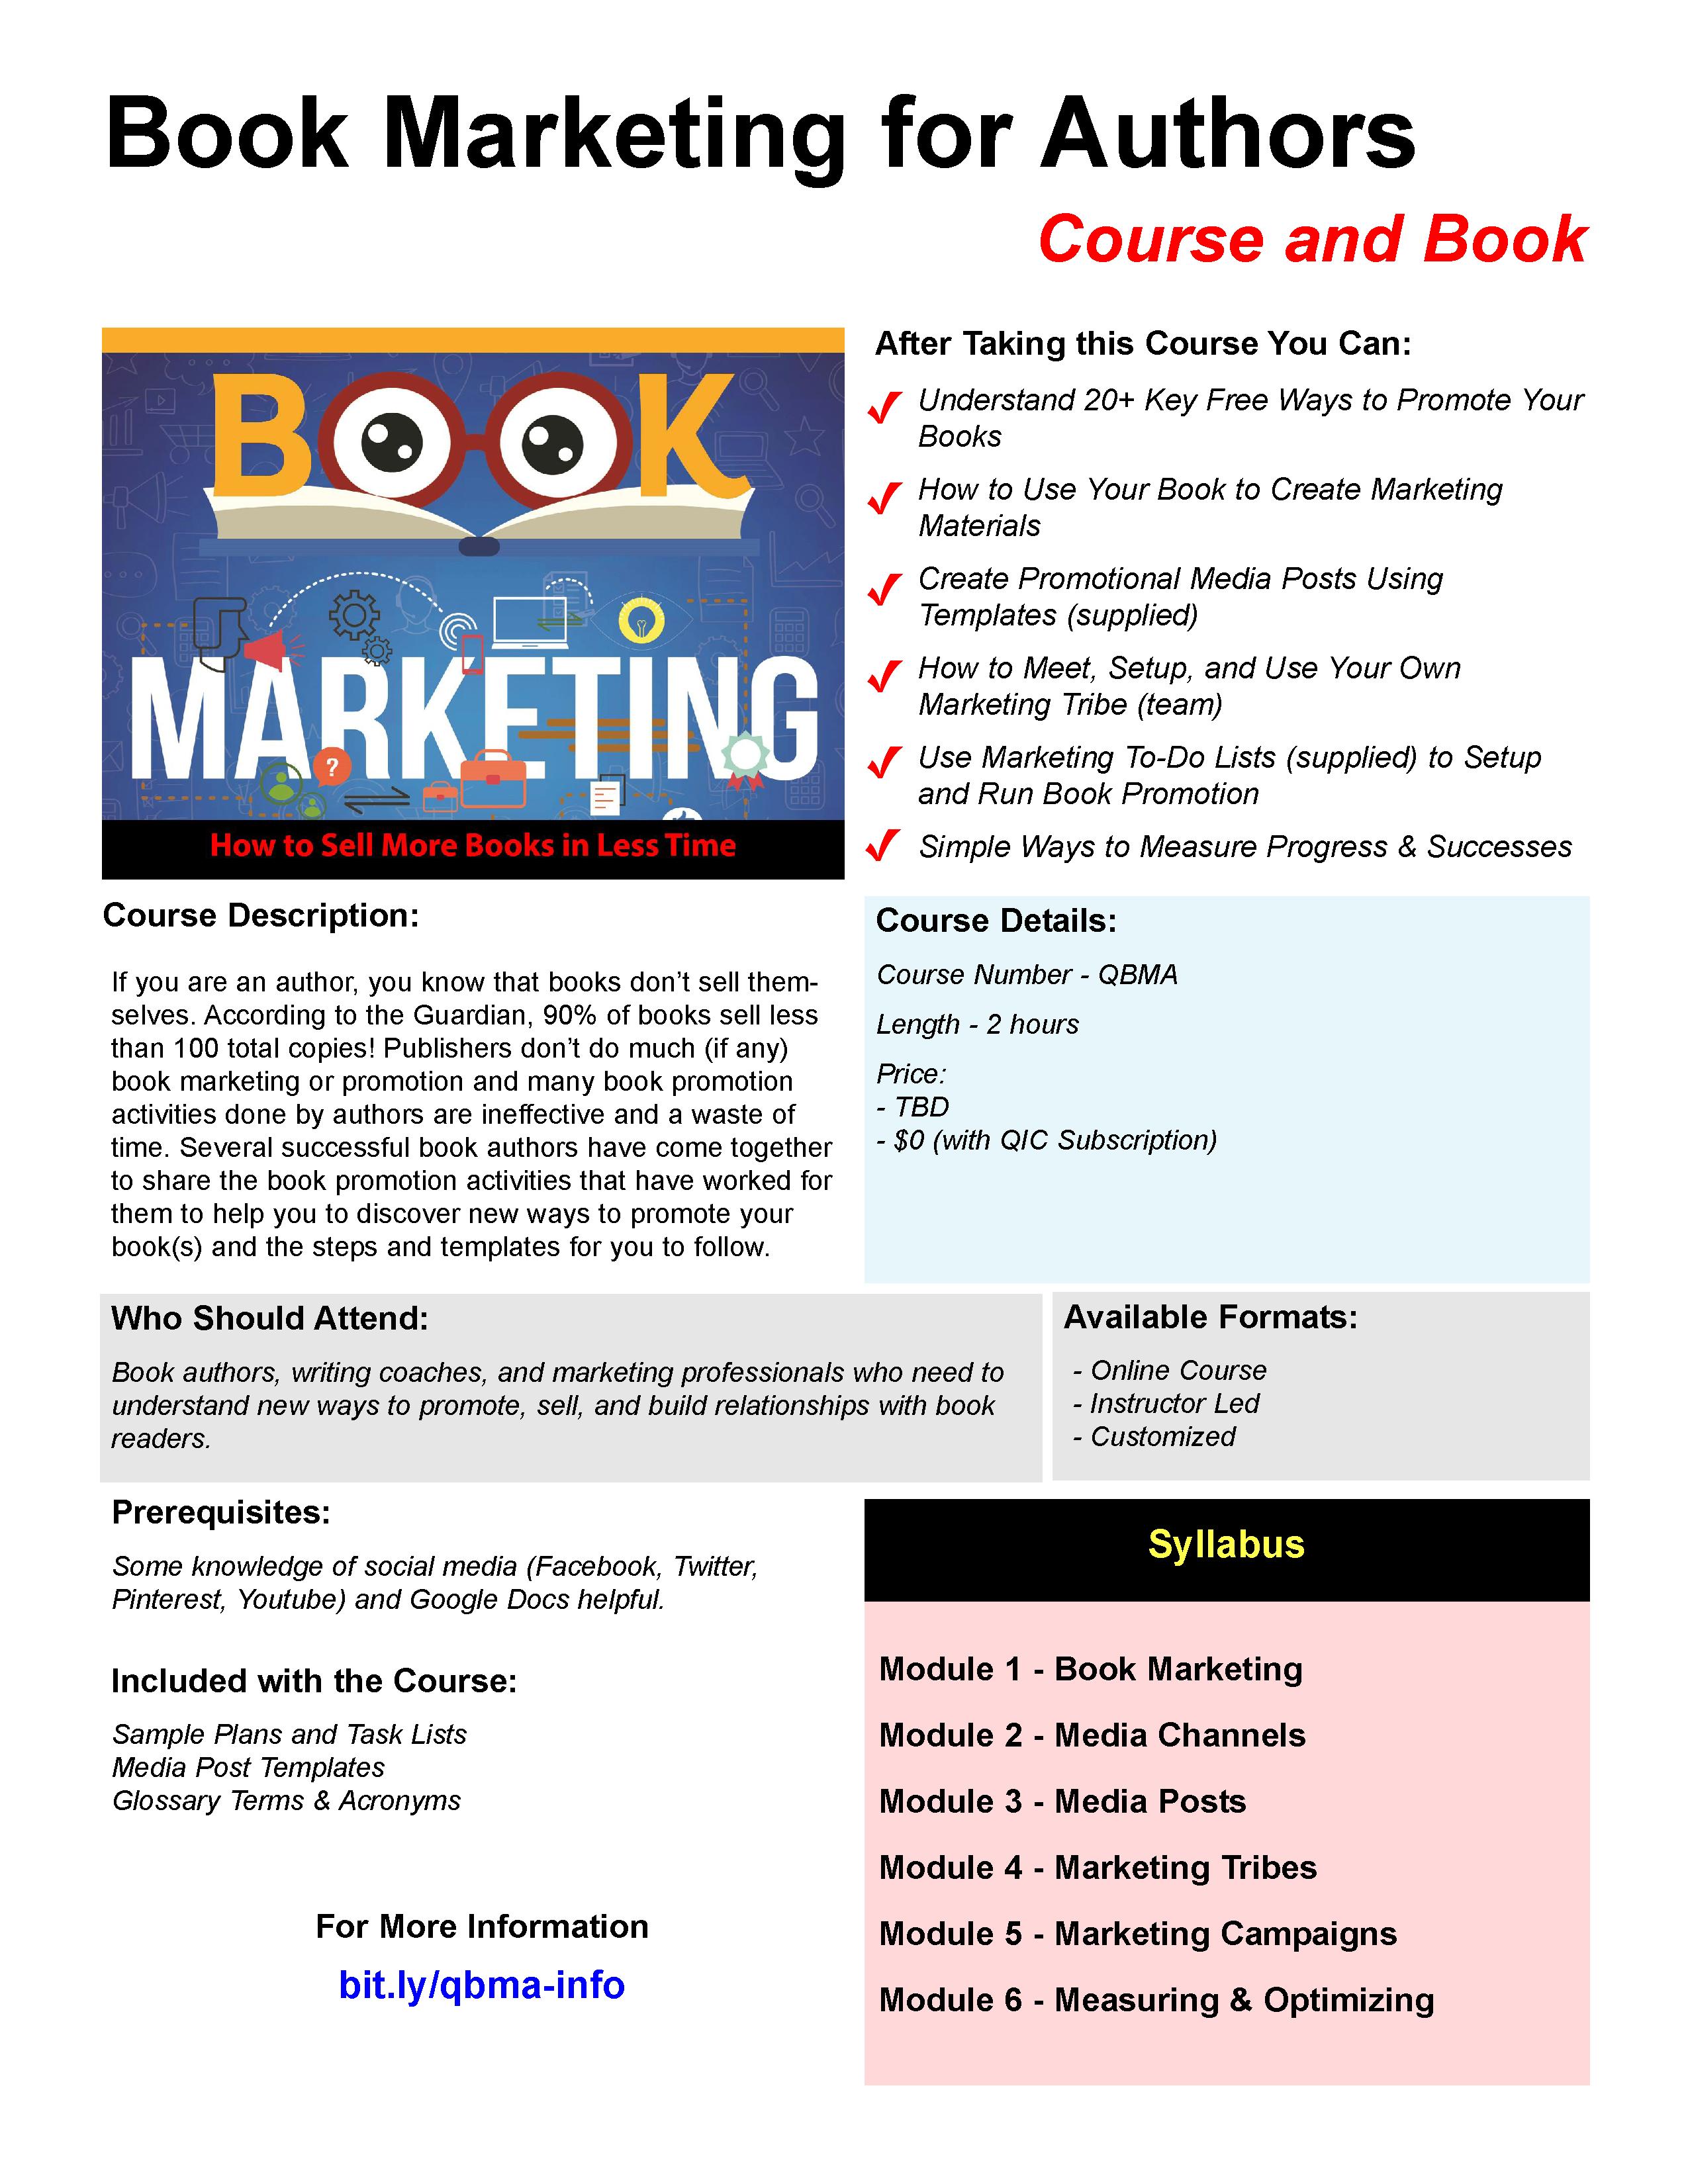 Book Marketing for Authors Course Brochure Page 1